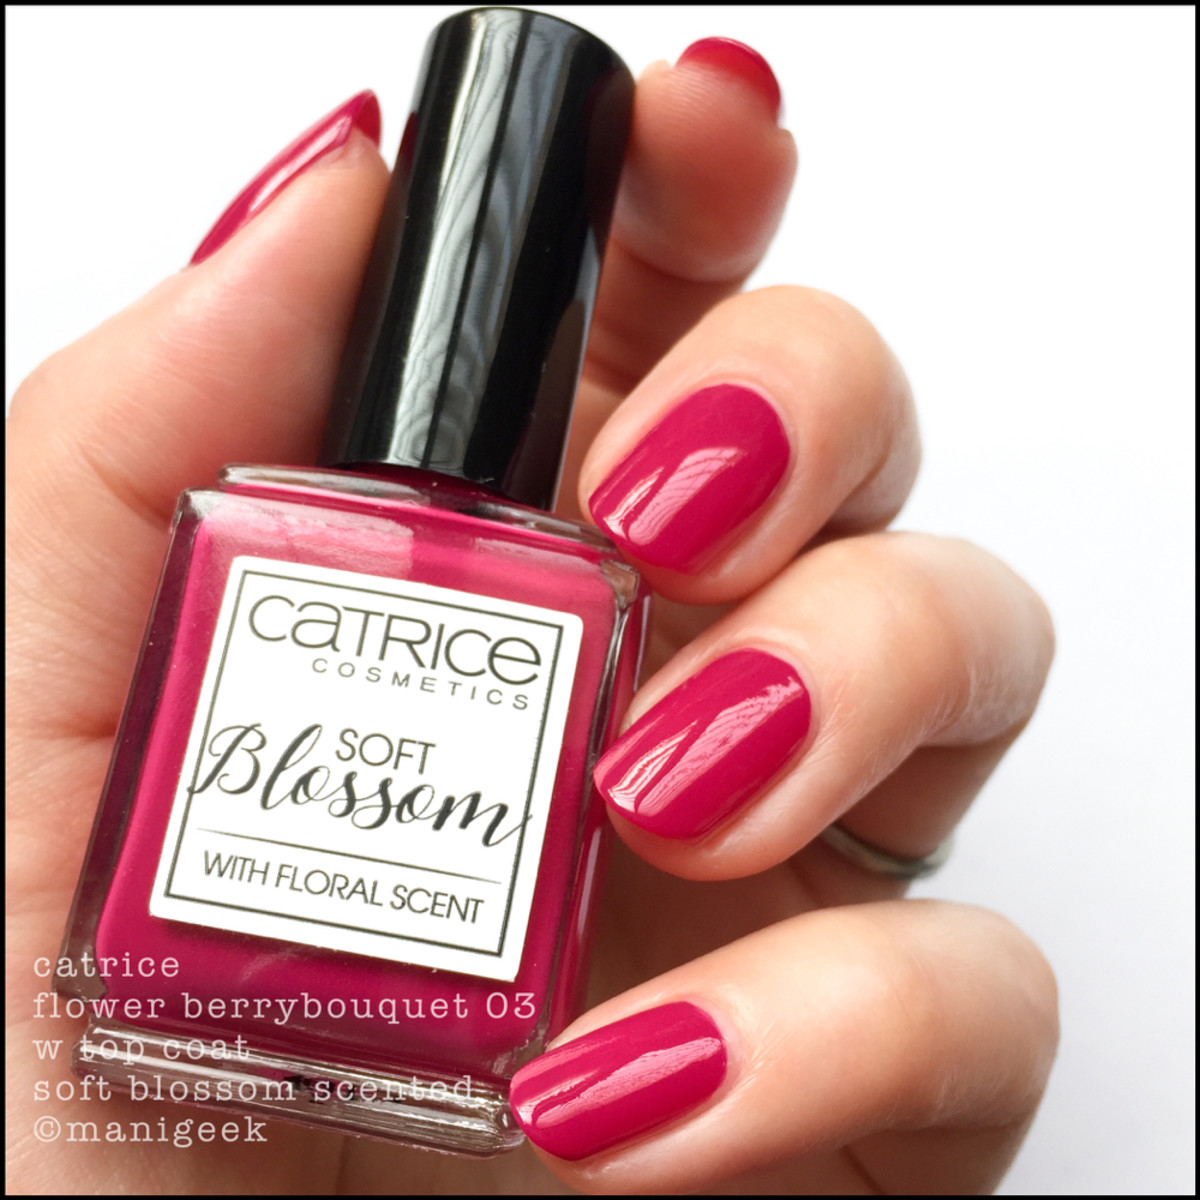 Catrice Flower Berrybouquet _ Catrice Soft Blossom Scented Nail Polish Swatches